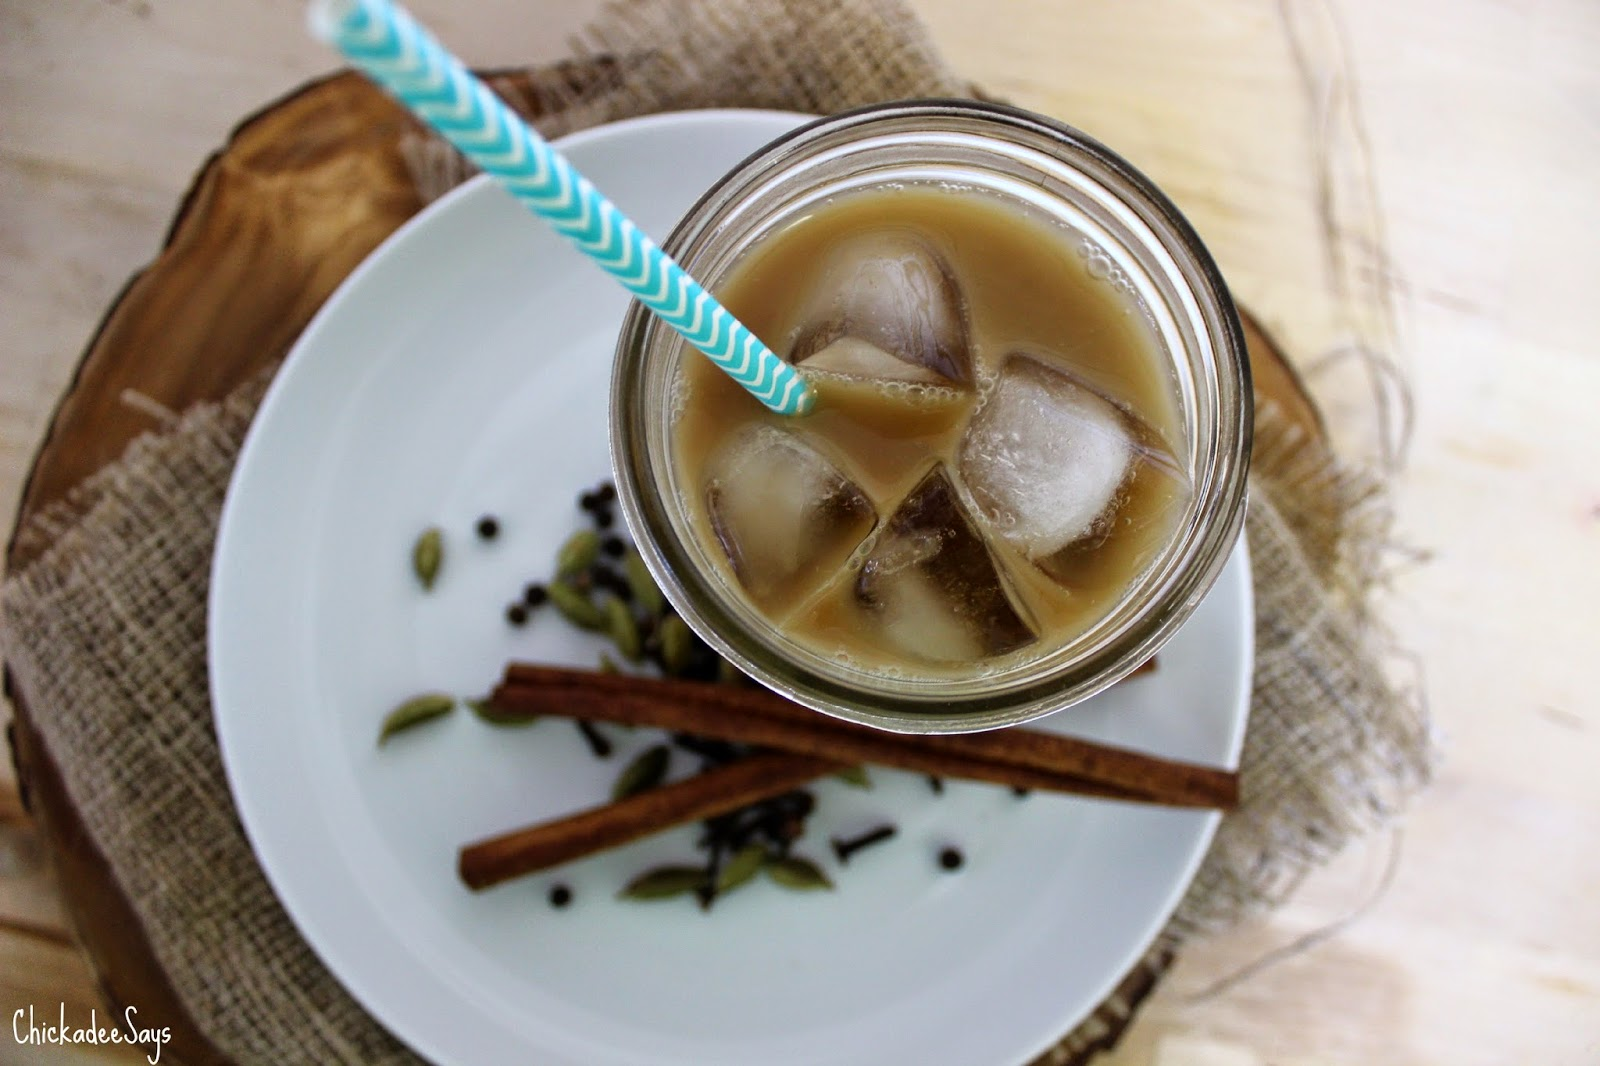 Chickadee Says: Summer Drink Series: Homemade Vegan Iced Chai Latte